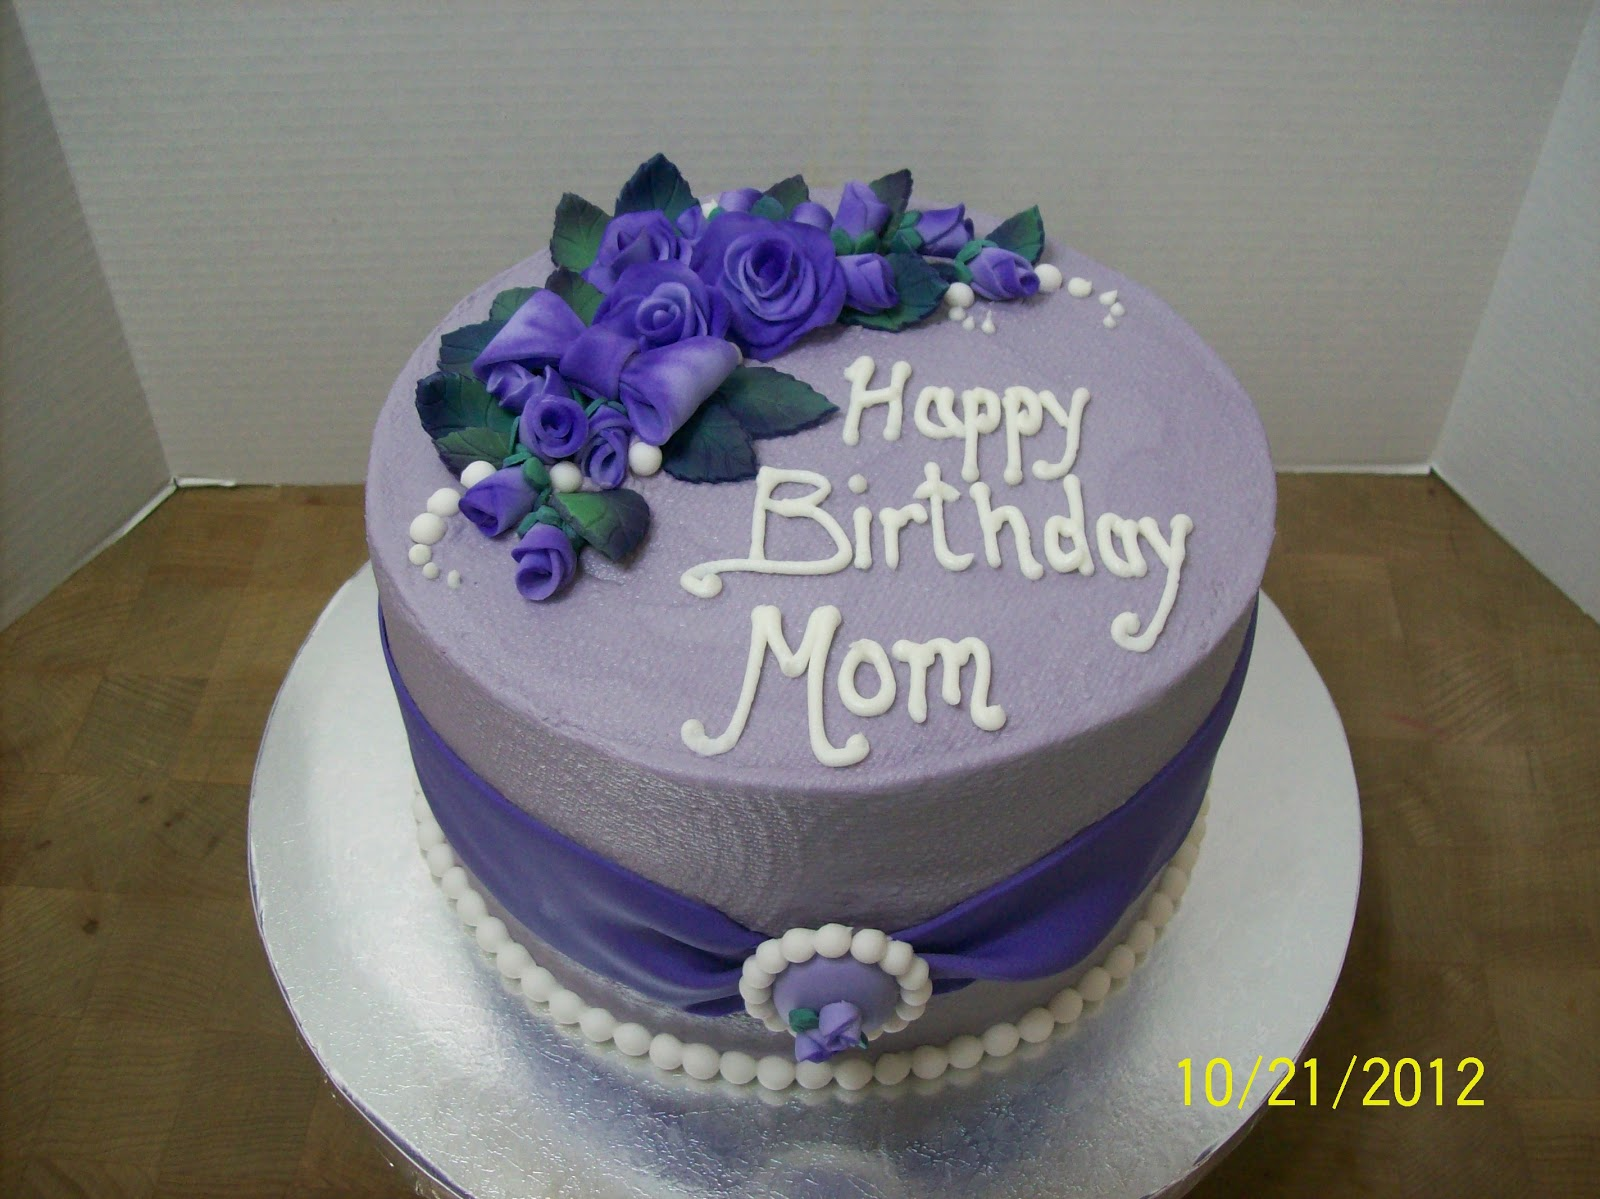 Cake Design For Mother : Image Gallery october birthday cakes mom